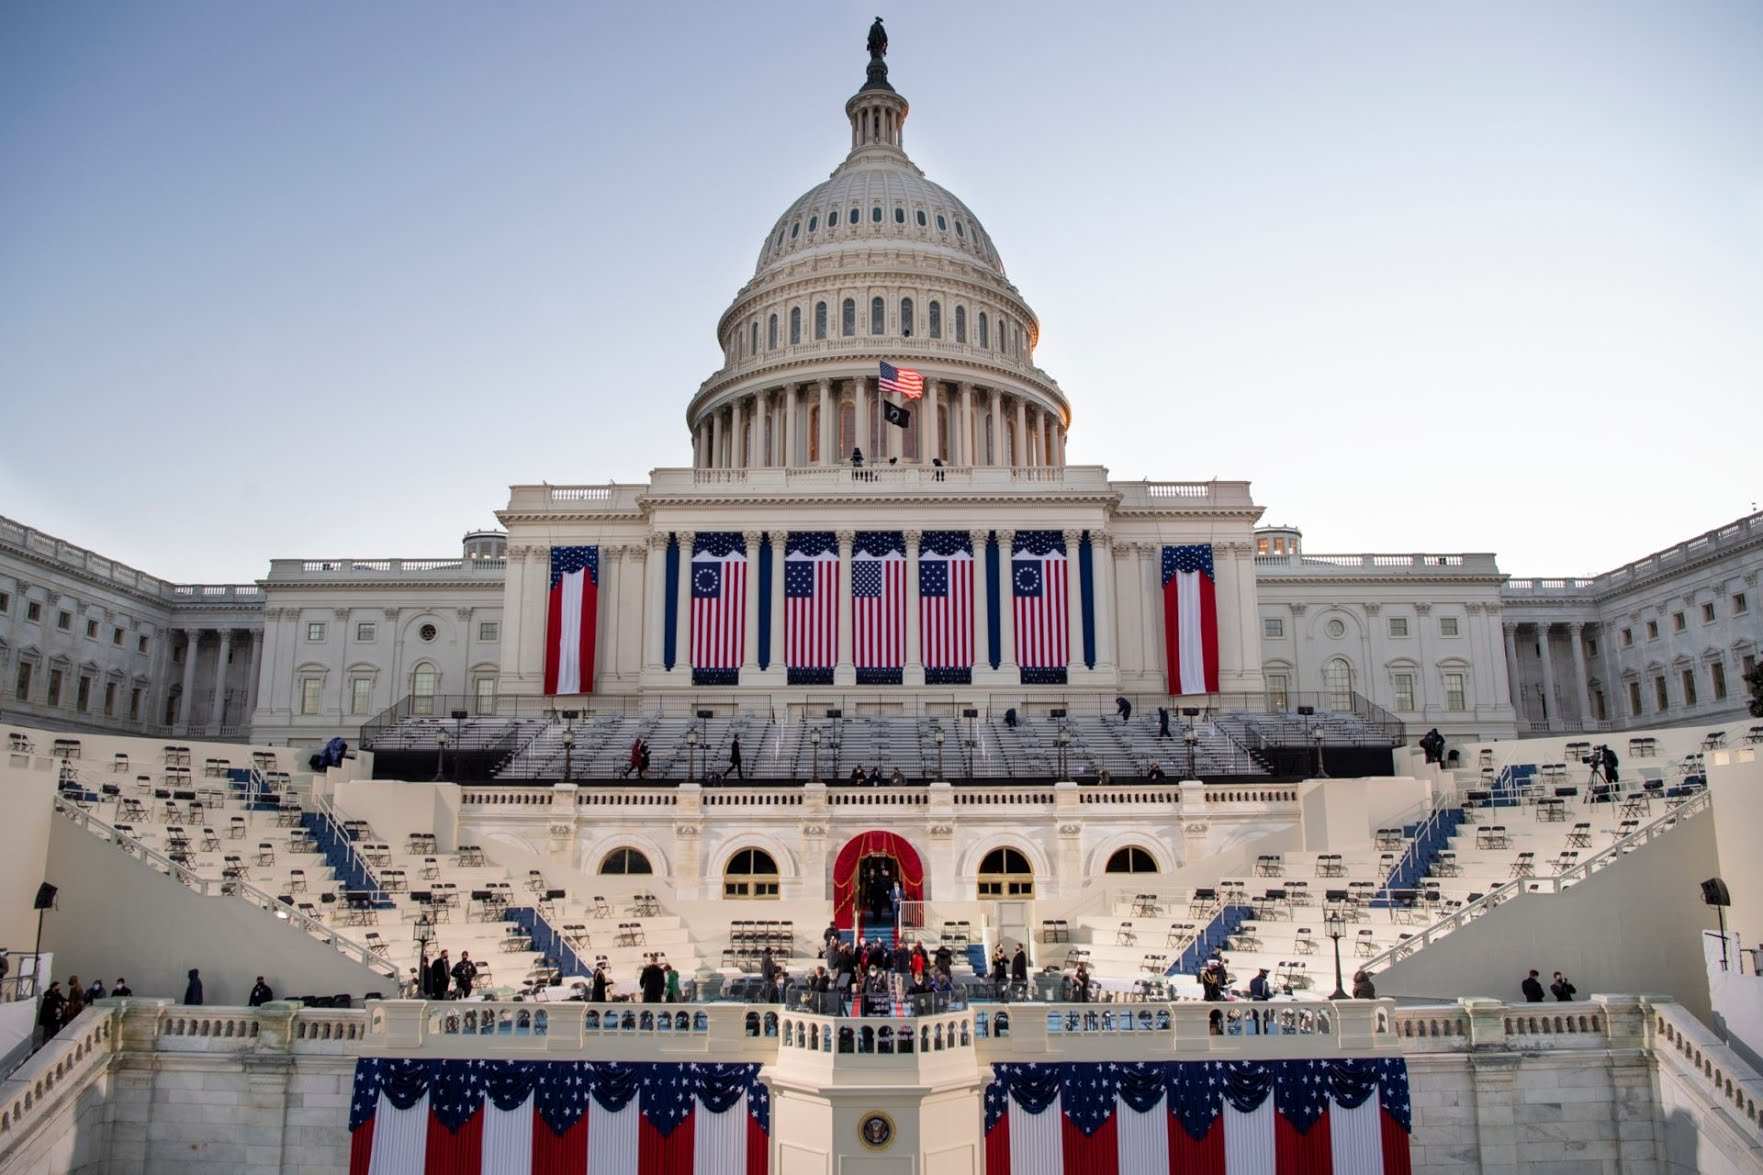 The sun rises behind the U.S. Capitol as preparations are made for the 59th inaugural ceremony for President-elect Joe Biden and Vice President-elect Kamala Harris on the West Front of the U.S. Capitol in Washington on Wednesday, morning. (Caroline Brehman/Pool Photo via AP)